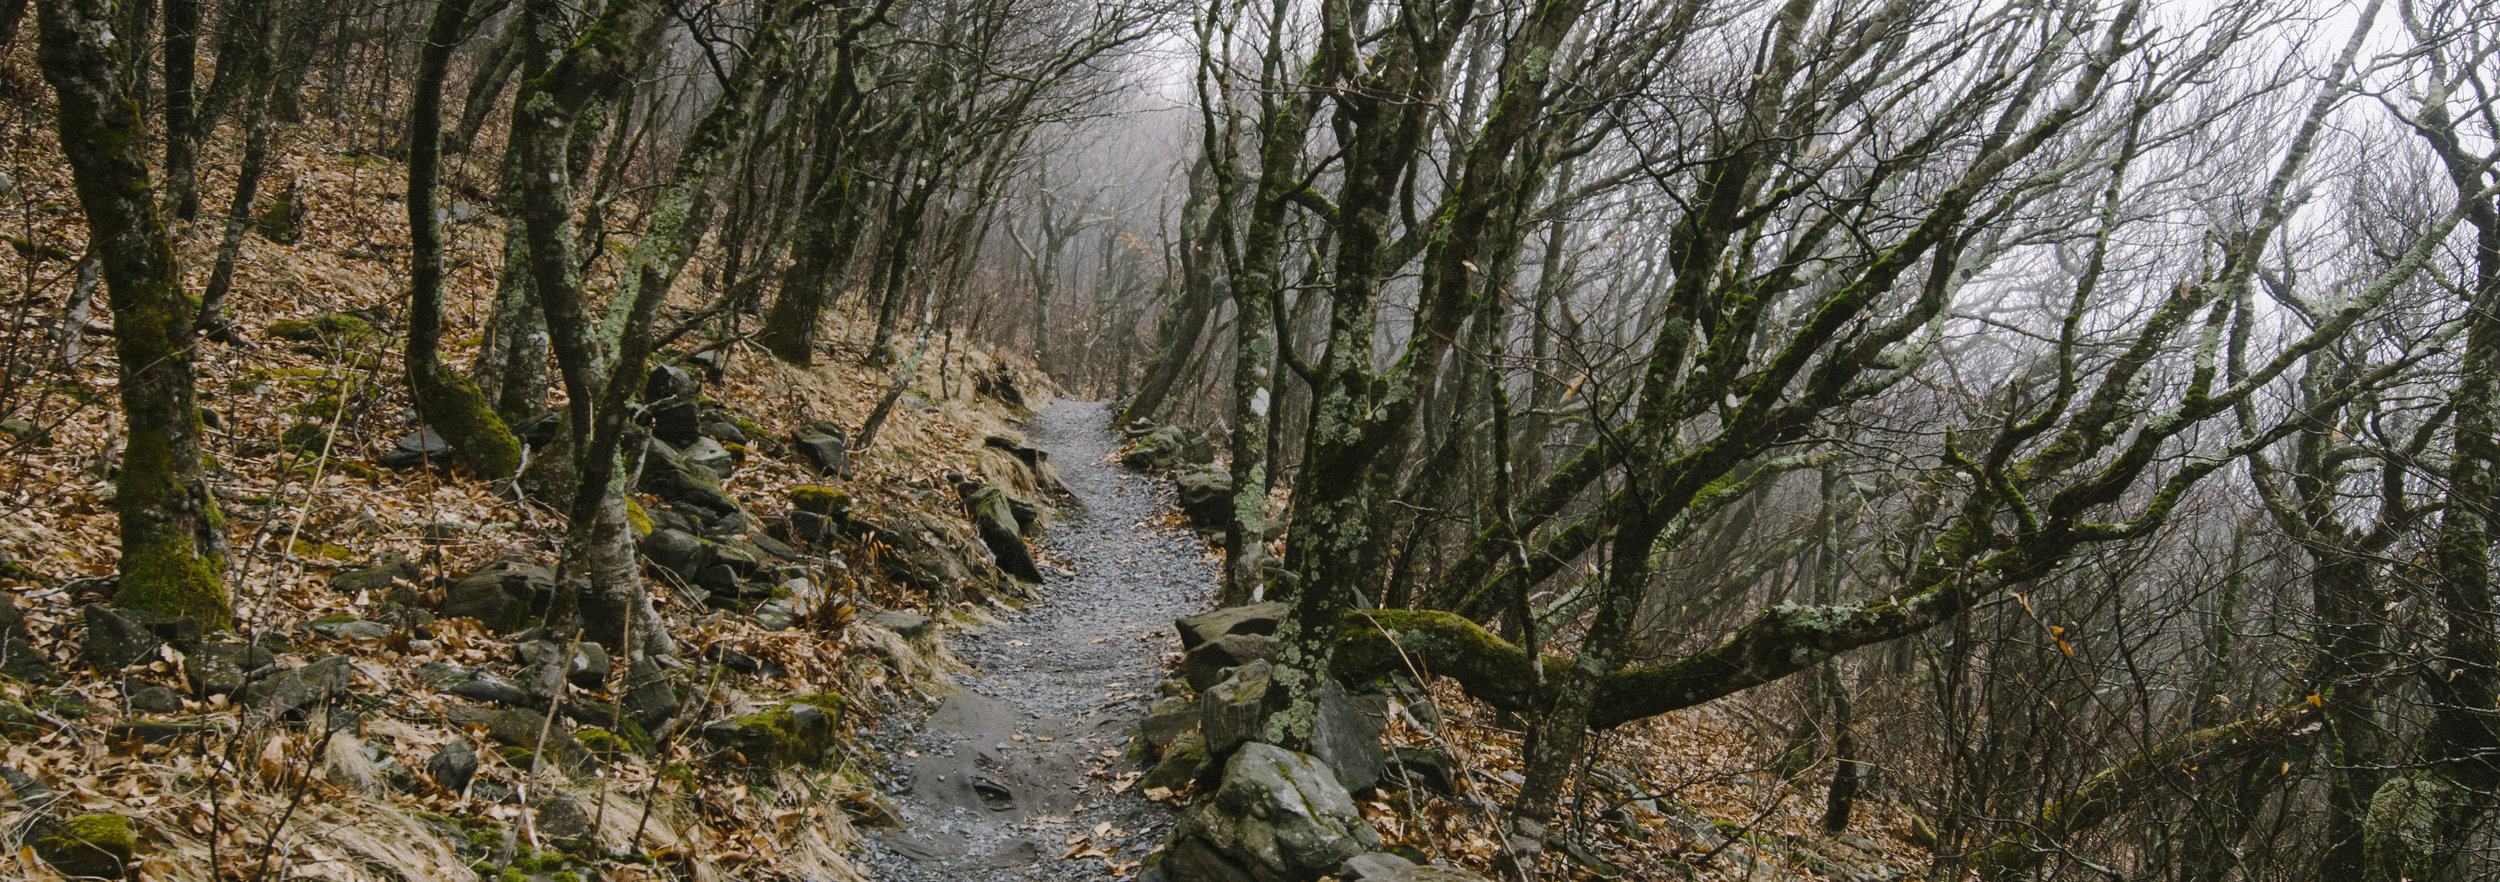 Near the summit of Elk Knob, the trees become scraggly and twisted as the trail narrows at 5,500 feet.